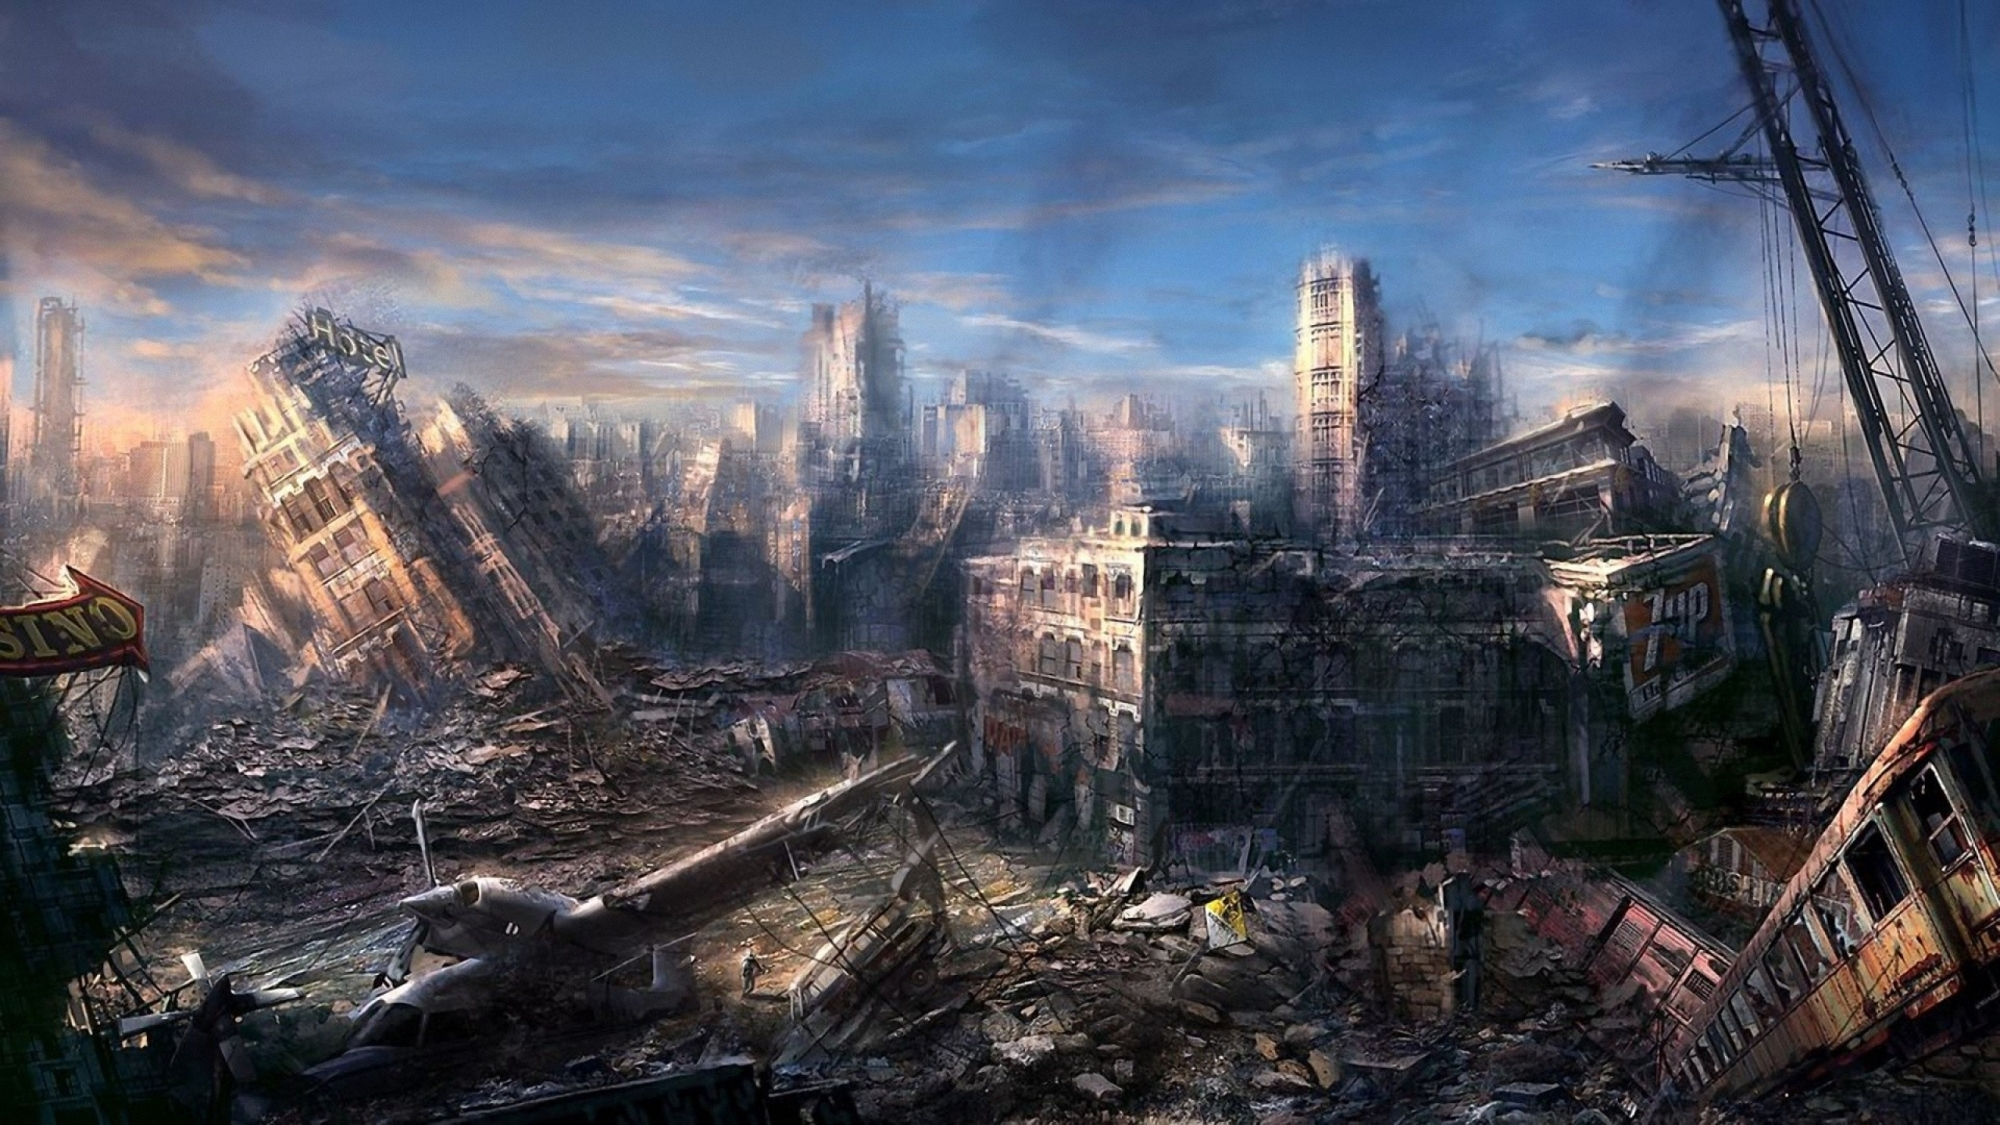 ruins_cityscapes_postapocalyptic_artwork_1920x1080_wallpaper_wallpaper_2560x1440_www-wall321-com